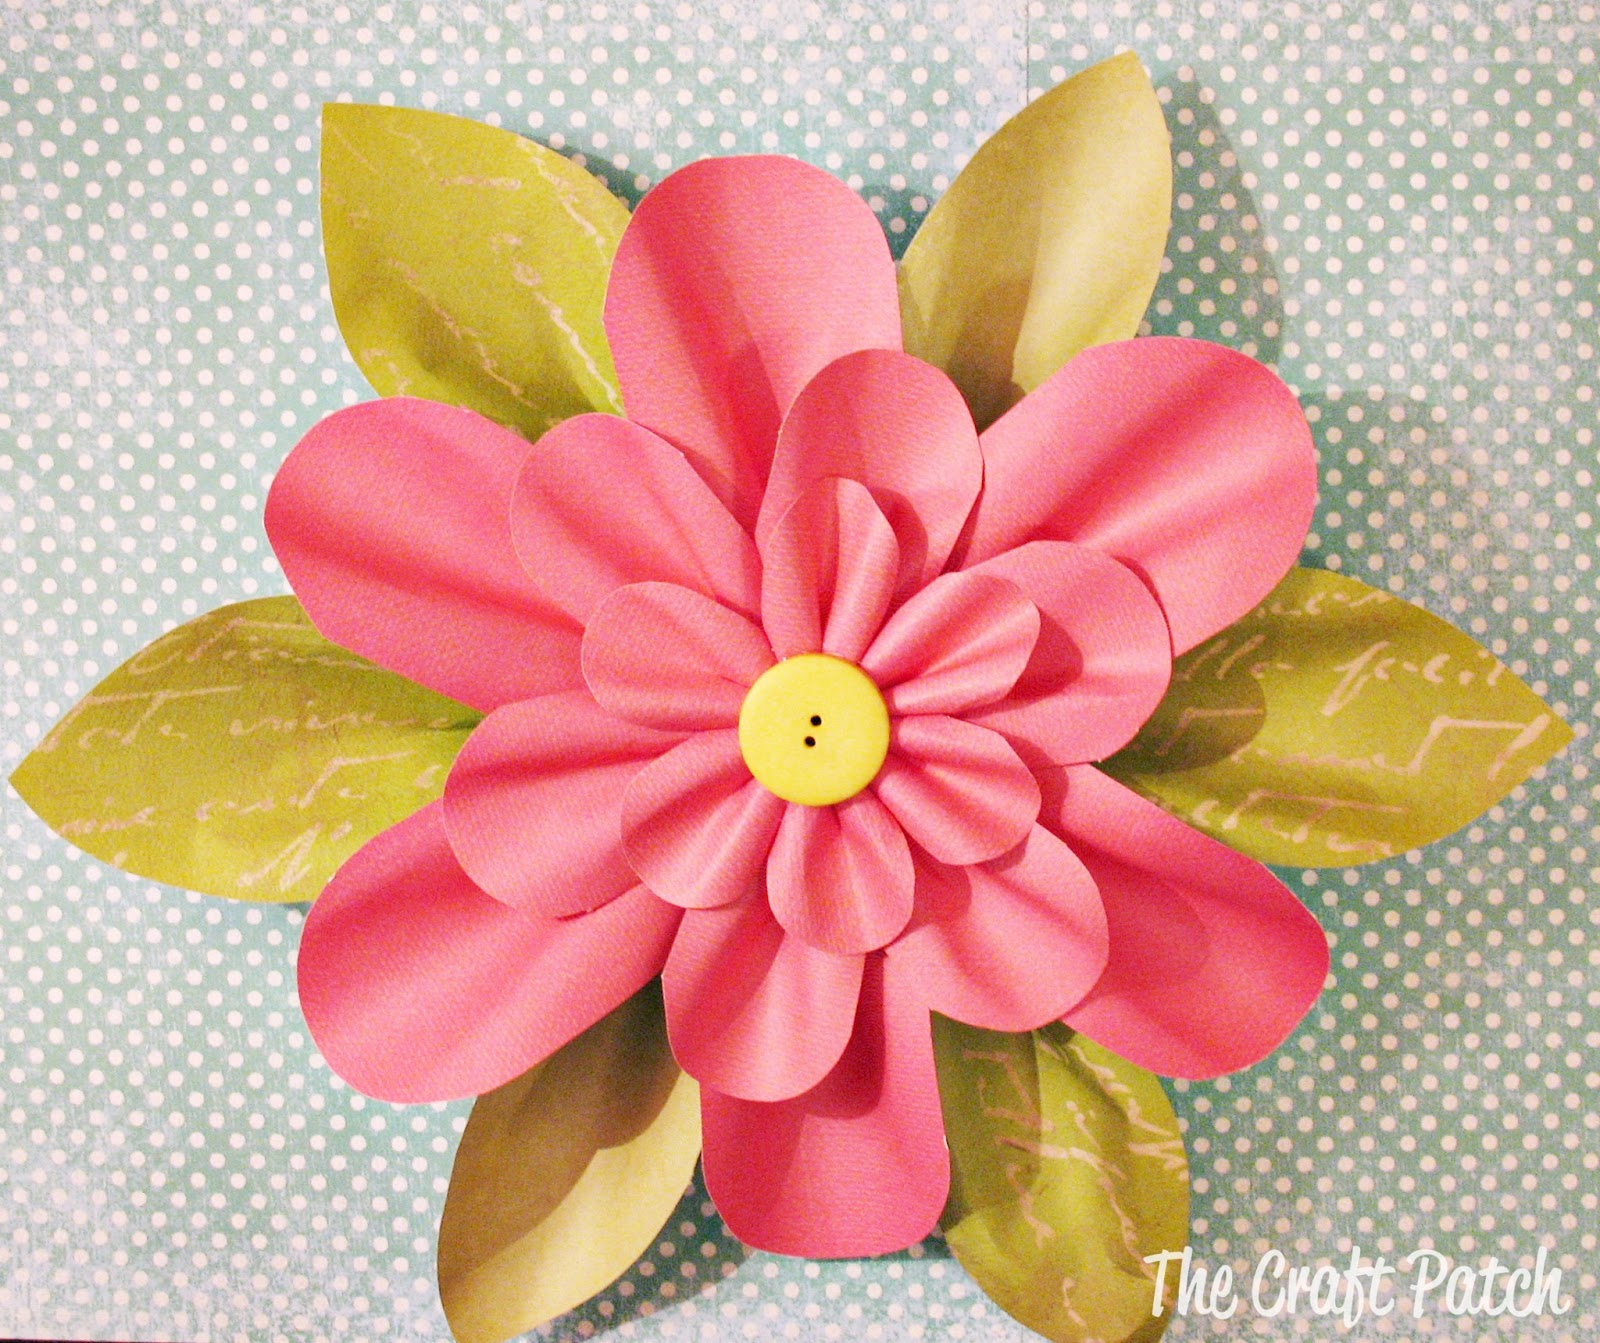 Flower made in paper idealstalist the craft patch paper flower tutorial mightylinksfo